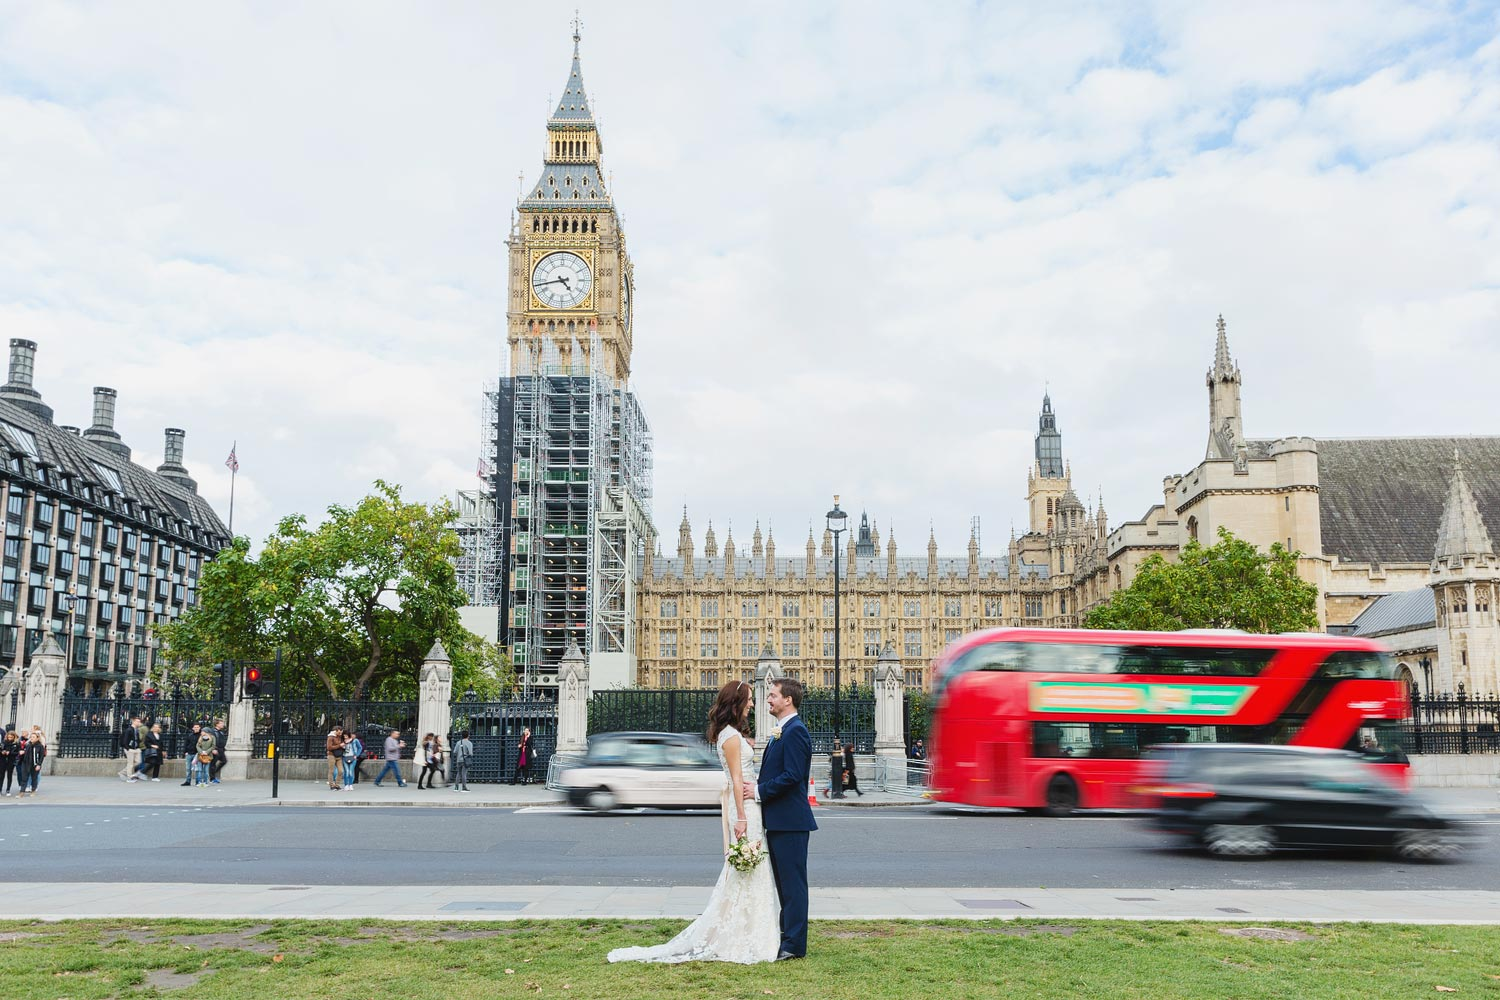 A couple get married at the House of Commons then pose outside Big Ben - London wedding photographer